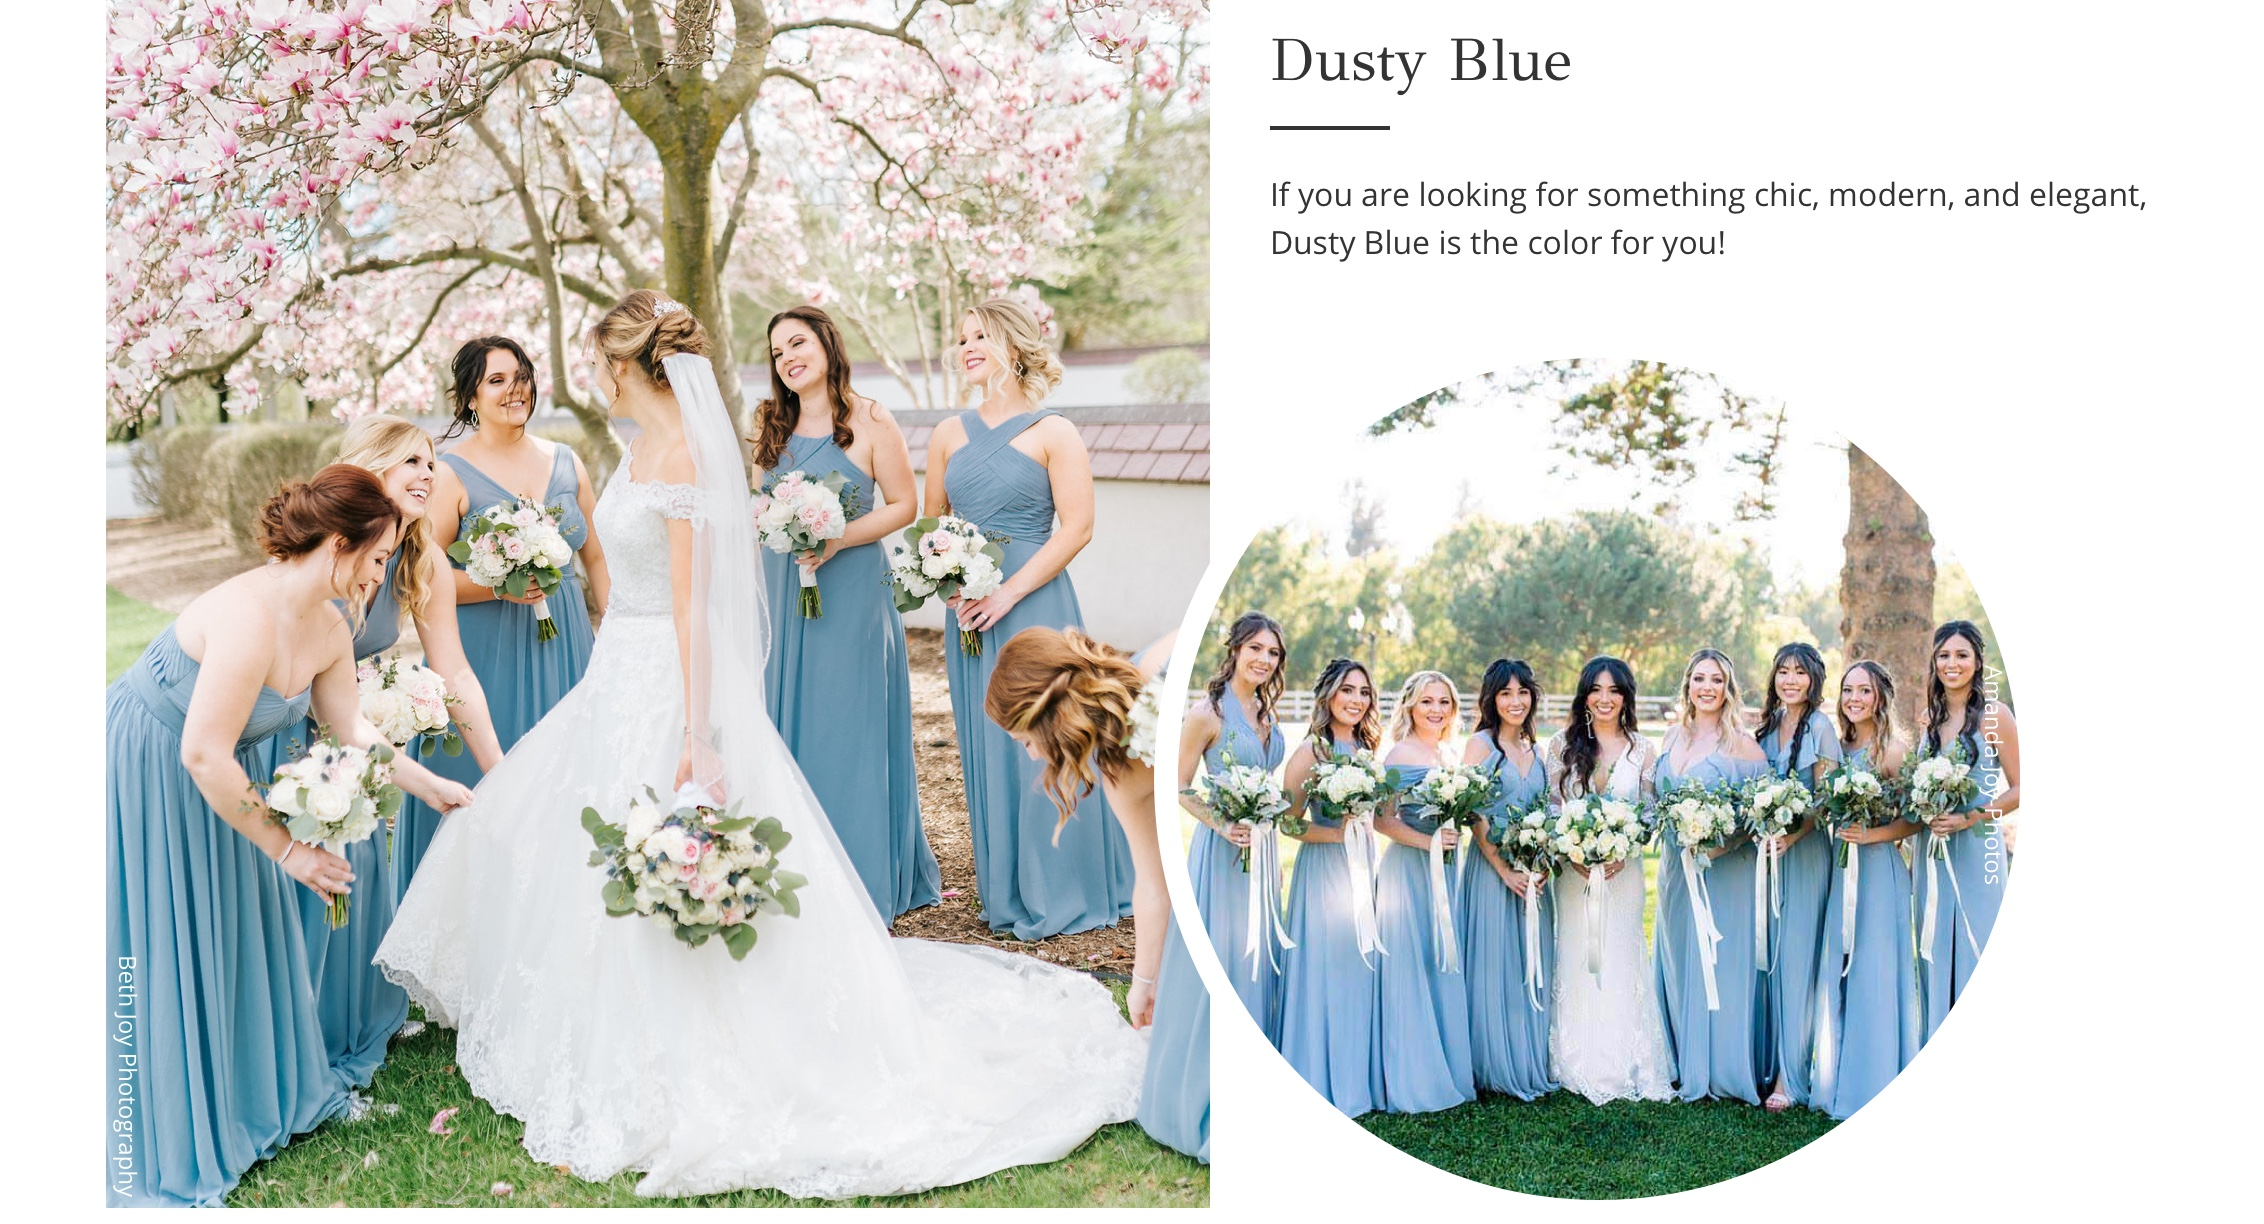 Dusty Blue Bridesmaid Dresses